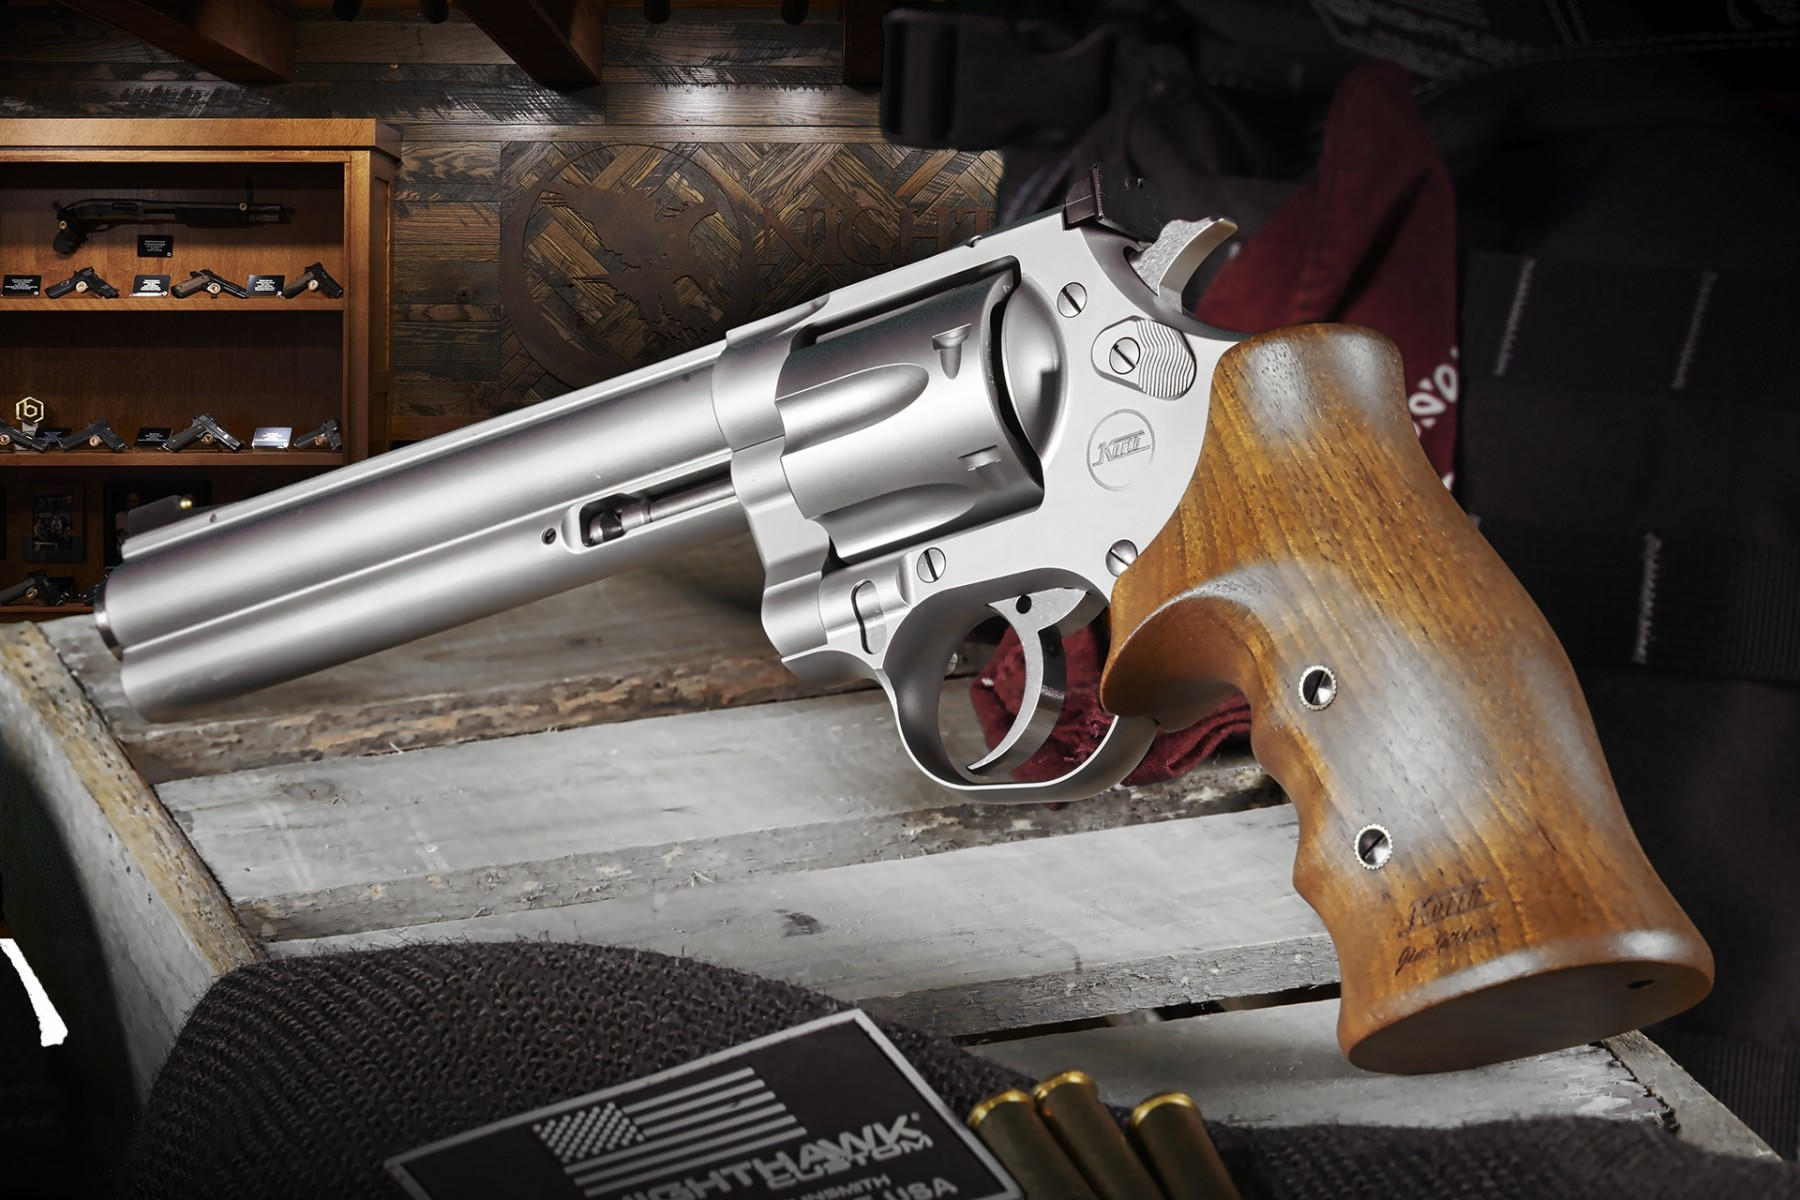 NIGHTHAWK CUSTOM AND KORTH DEBUT THE SILVER MONGOOSE 357 REVOLVER